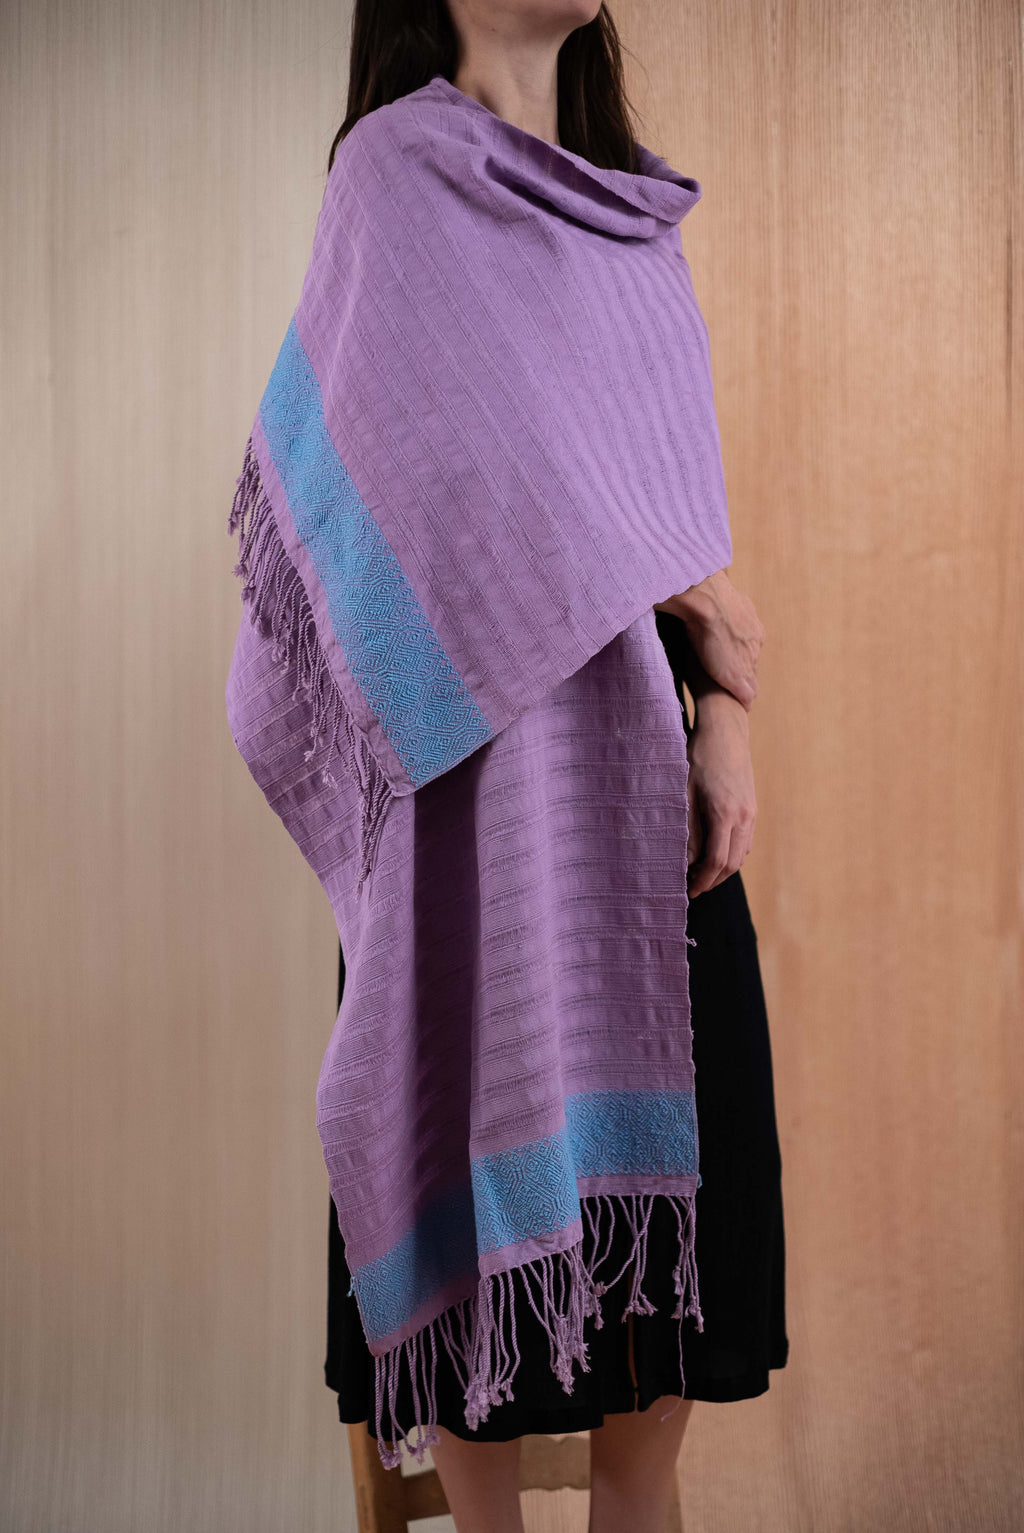 Scarf / poncho with purple Chiapas loom with blue details - TOCO MADERA - Handcraft shoe from Mexico - Handmade shoe